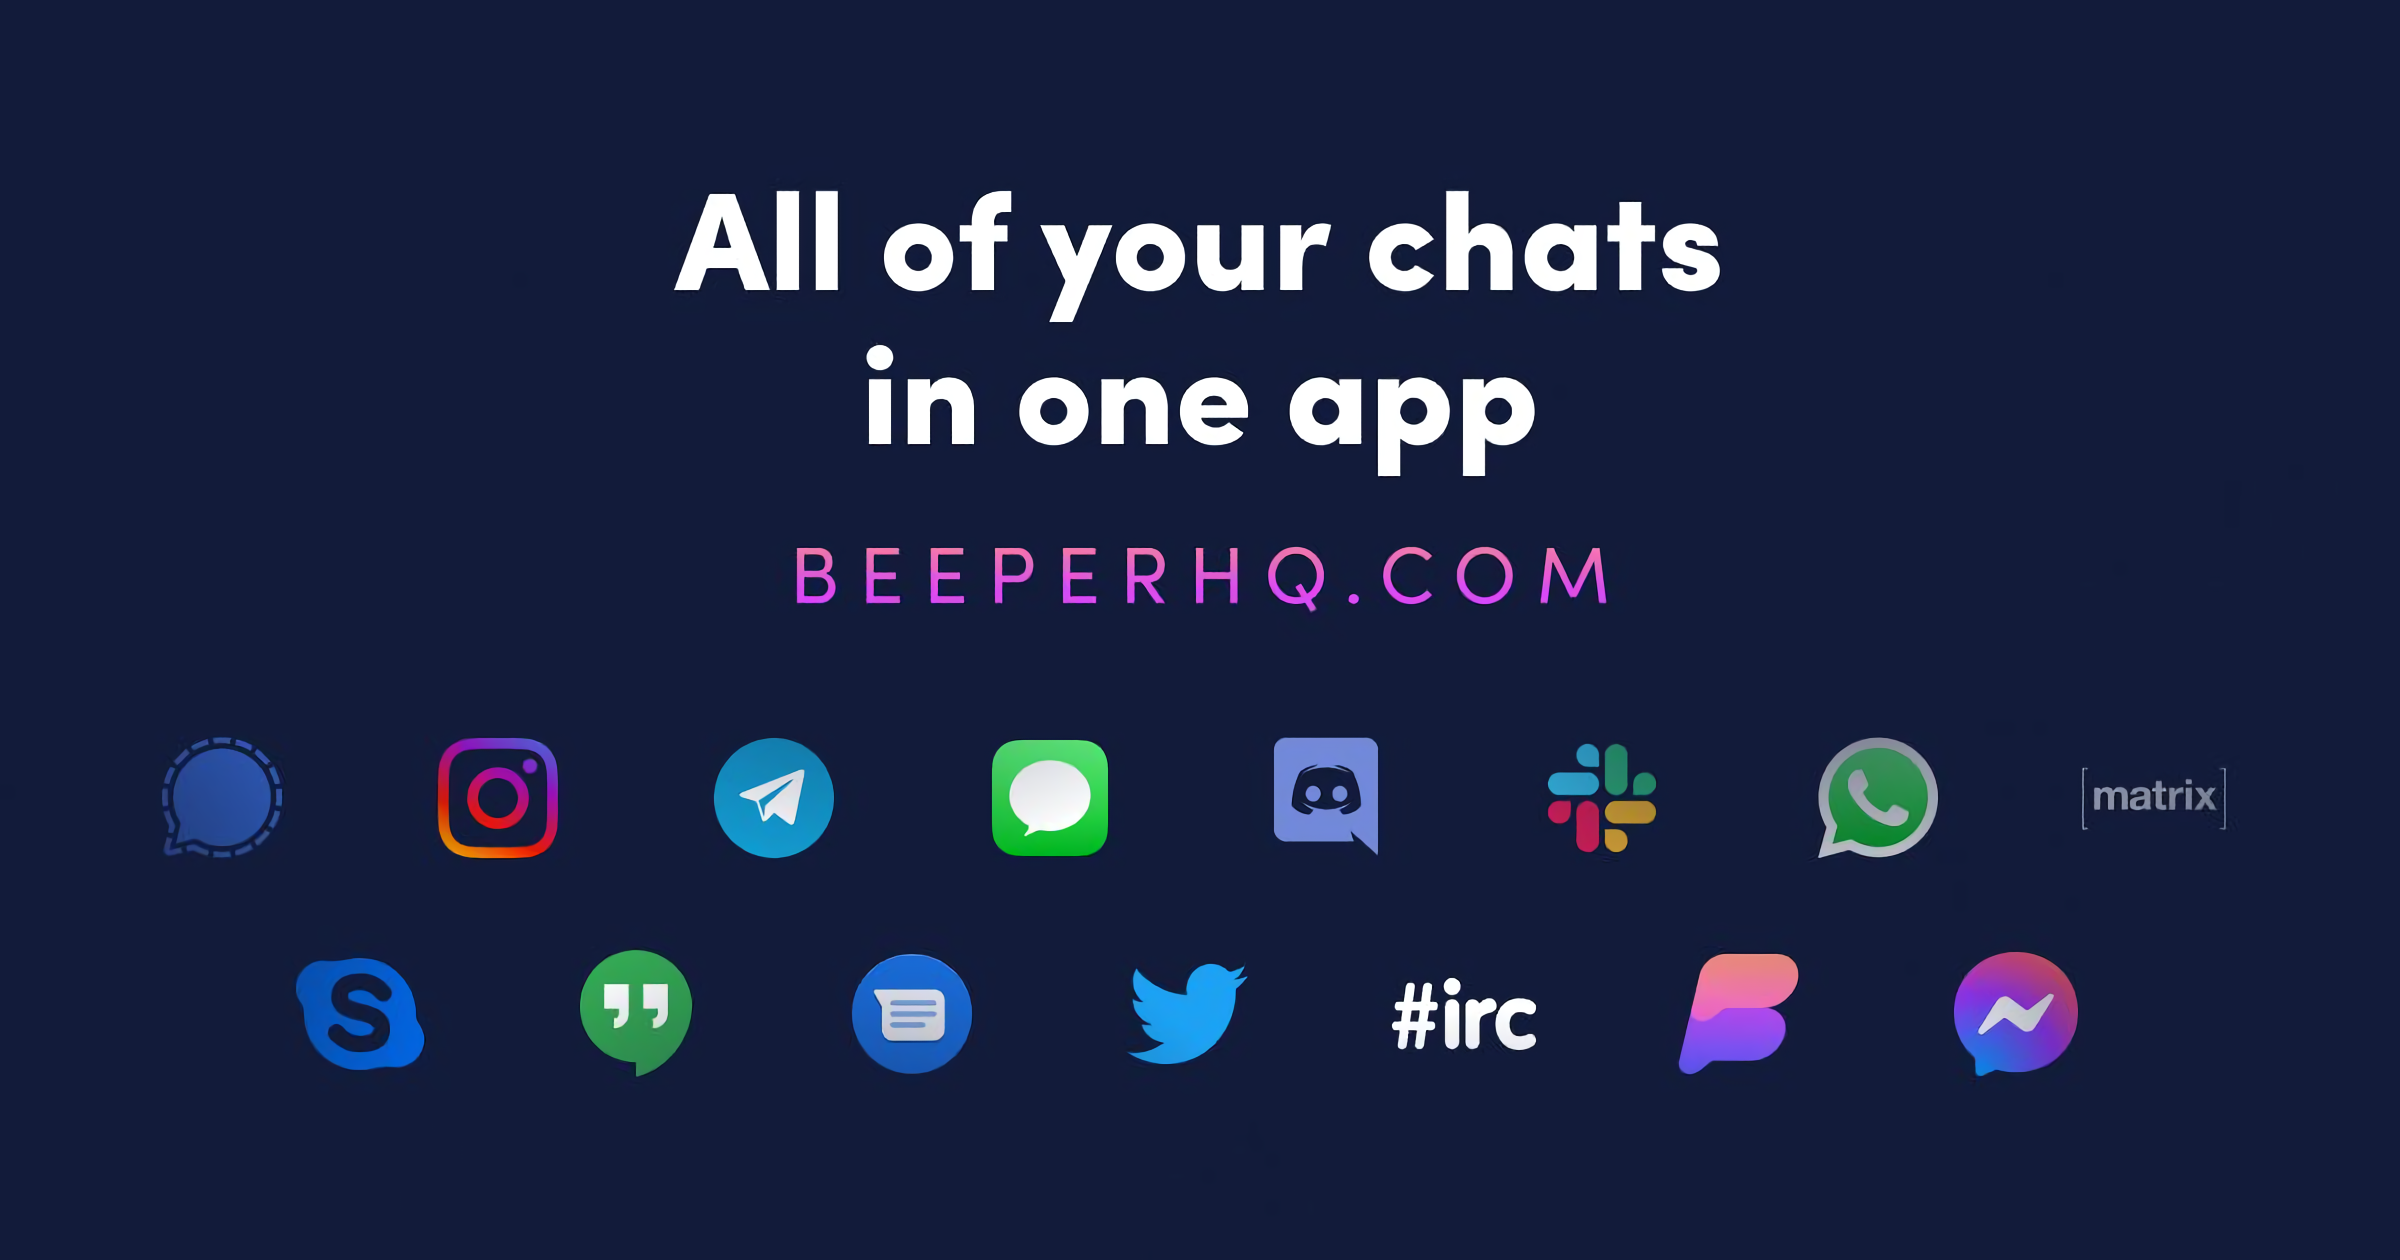 Pebble founder launches Beeper, a universal chat app that rolls 15 top services into one